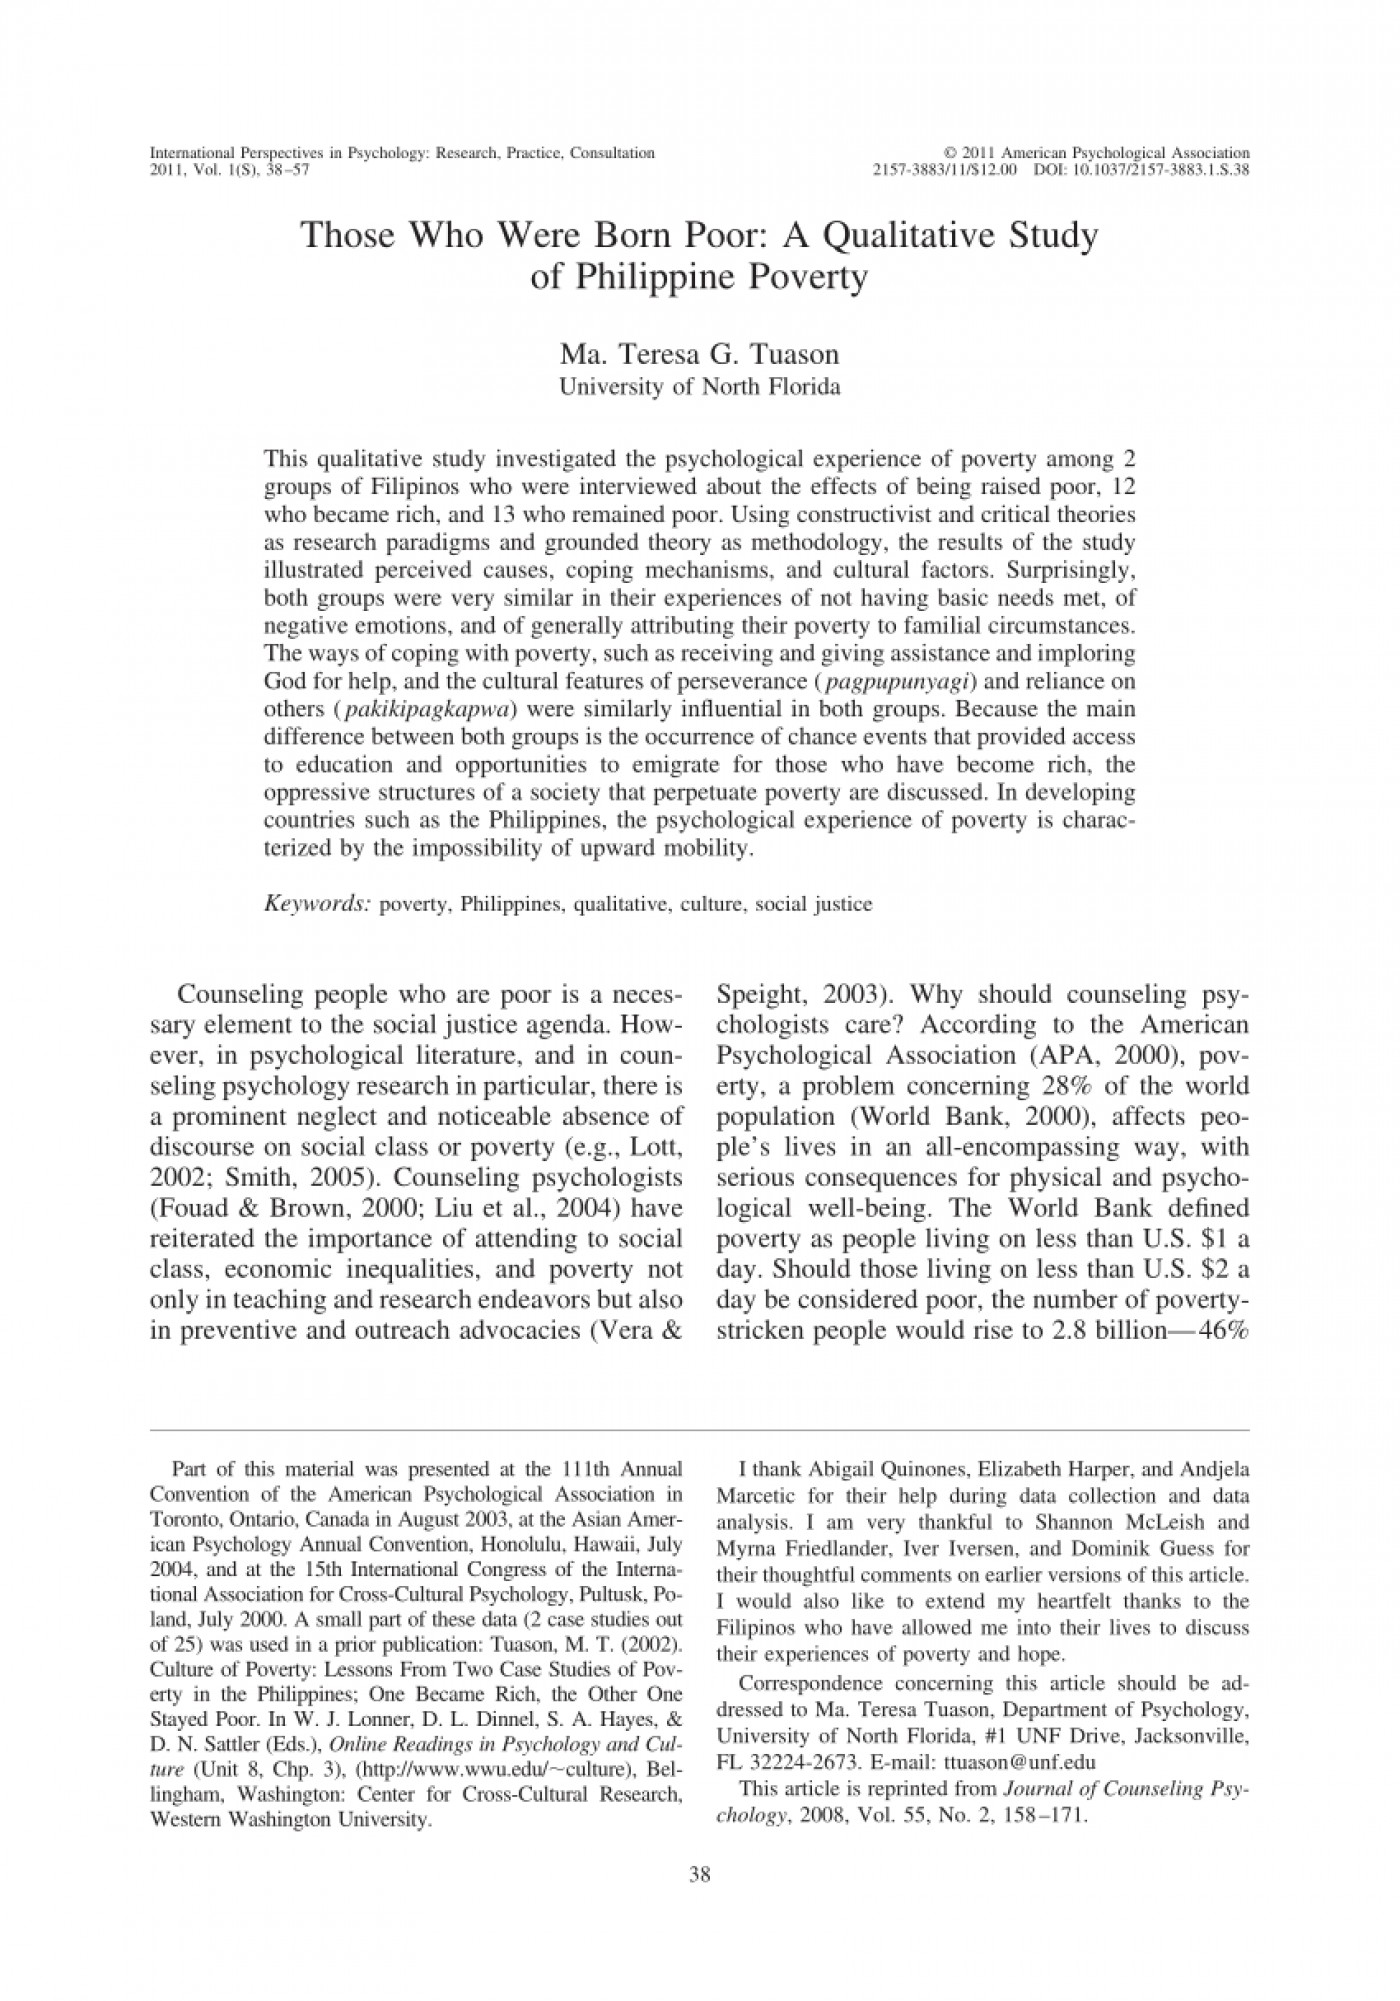 002 Poverty In The Philippines Research Paper Pdf Impressive 1400